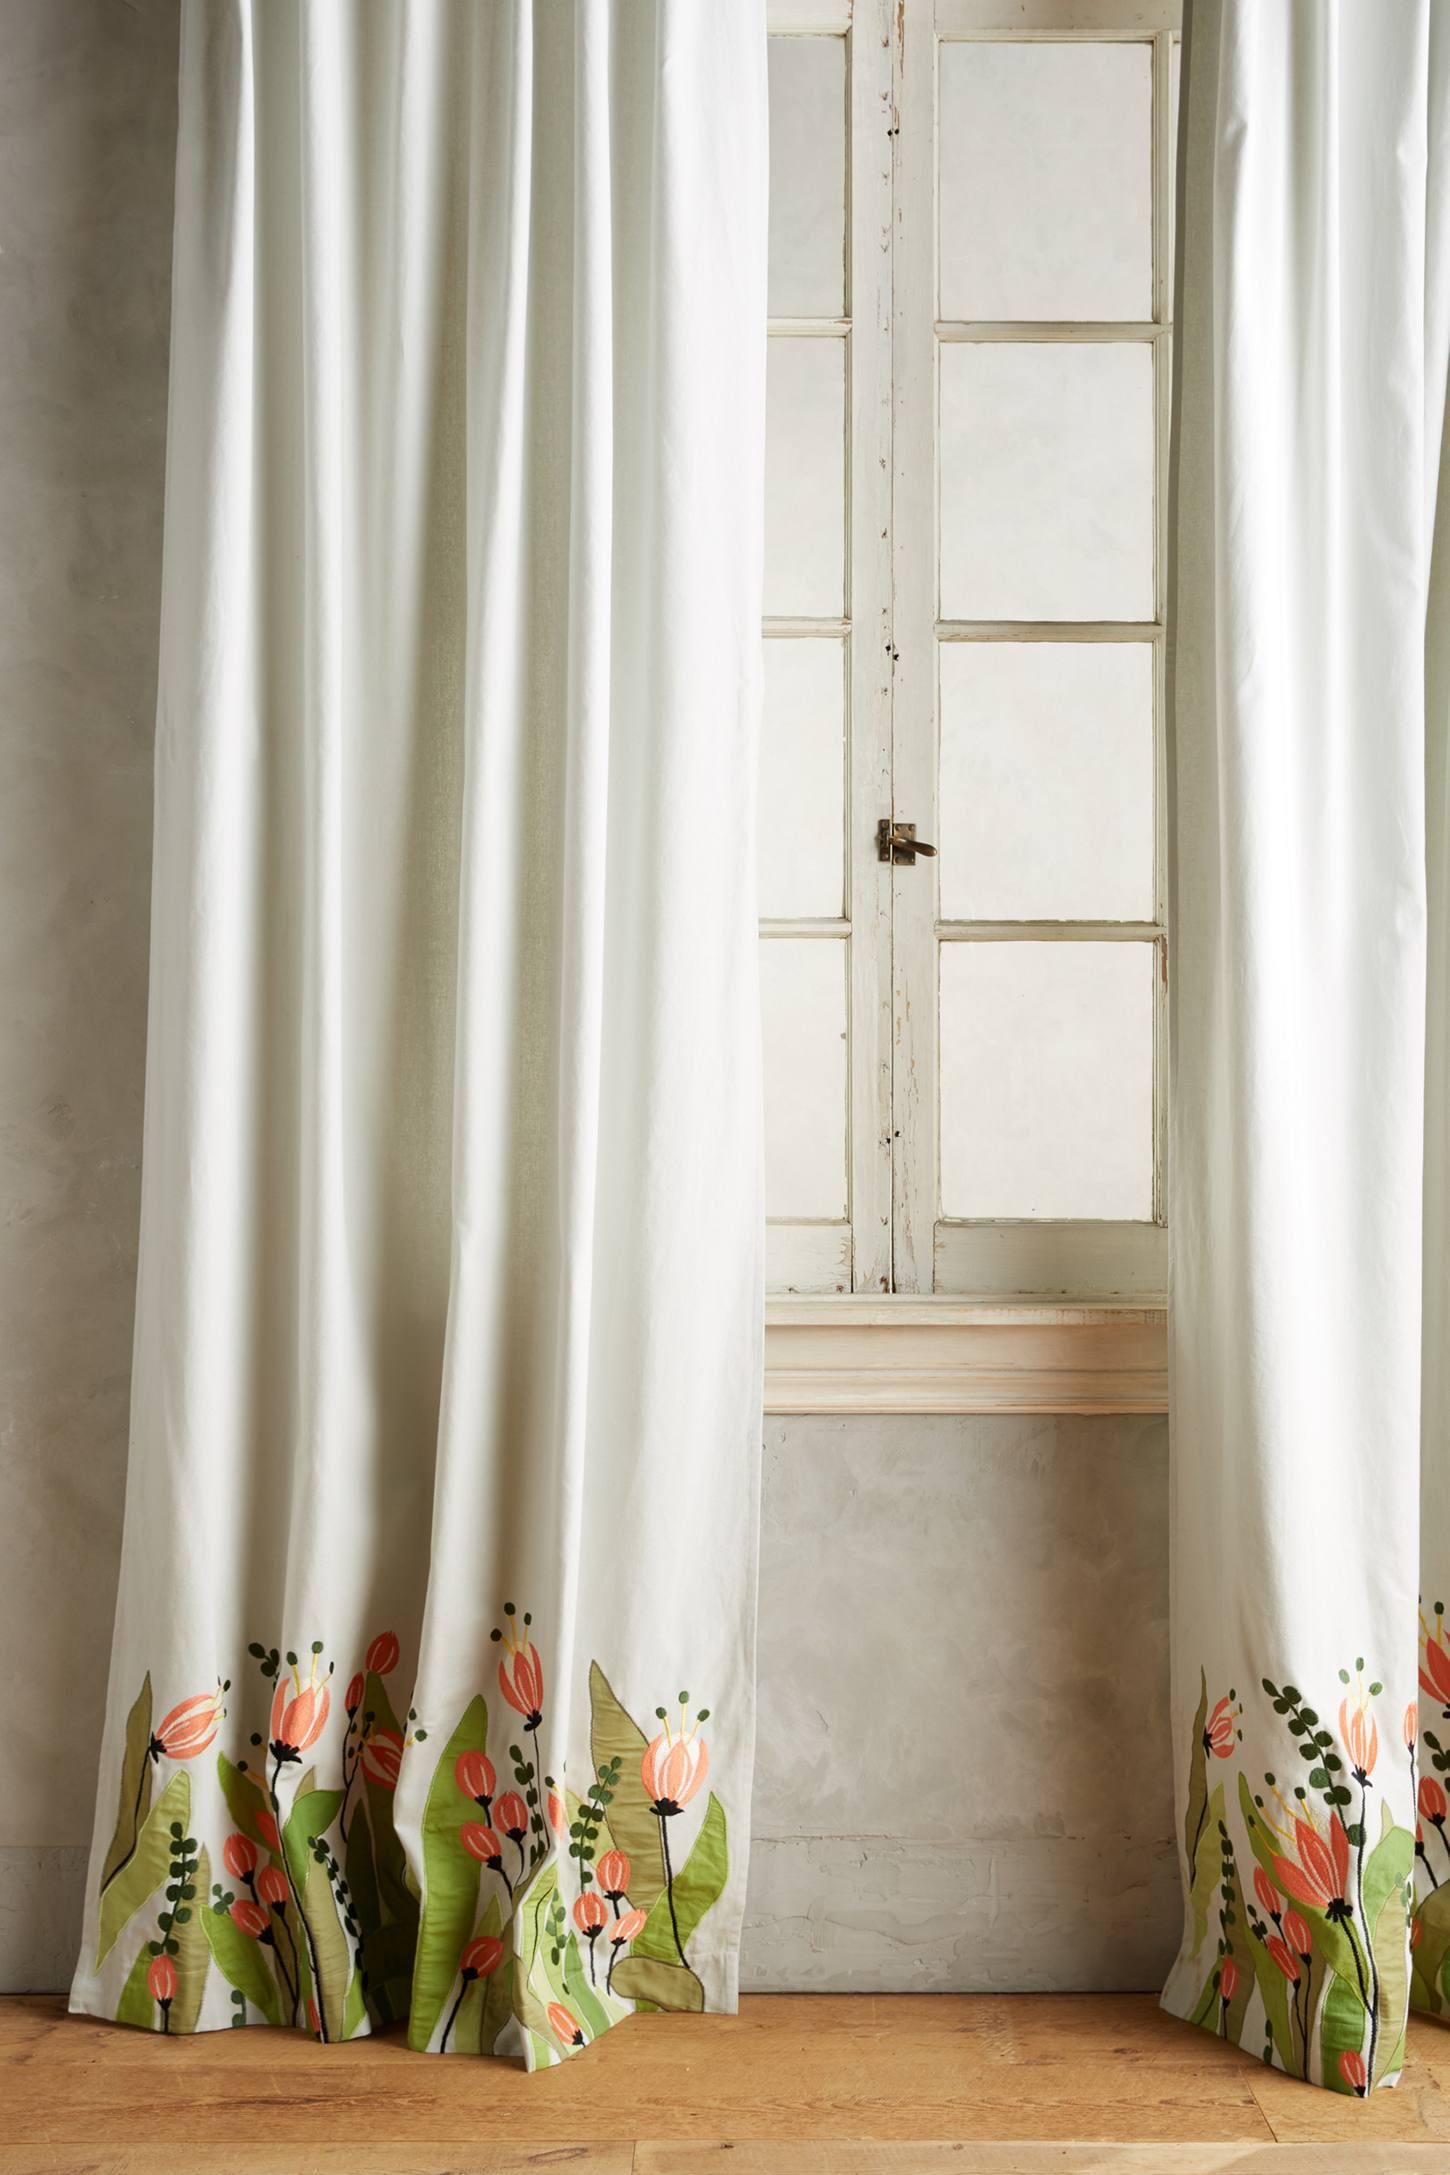 Window treatment ideas for a sunroom  smithery curtain rod  window coverings soft furnishings and apartments